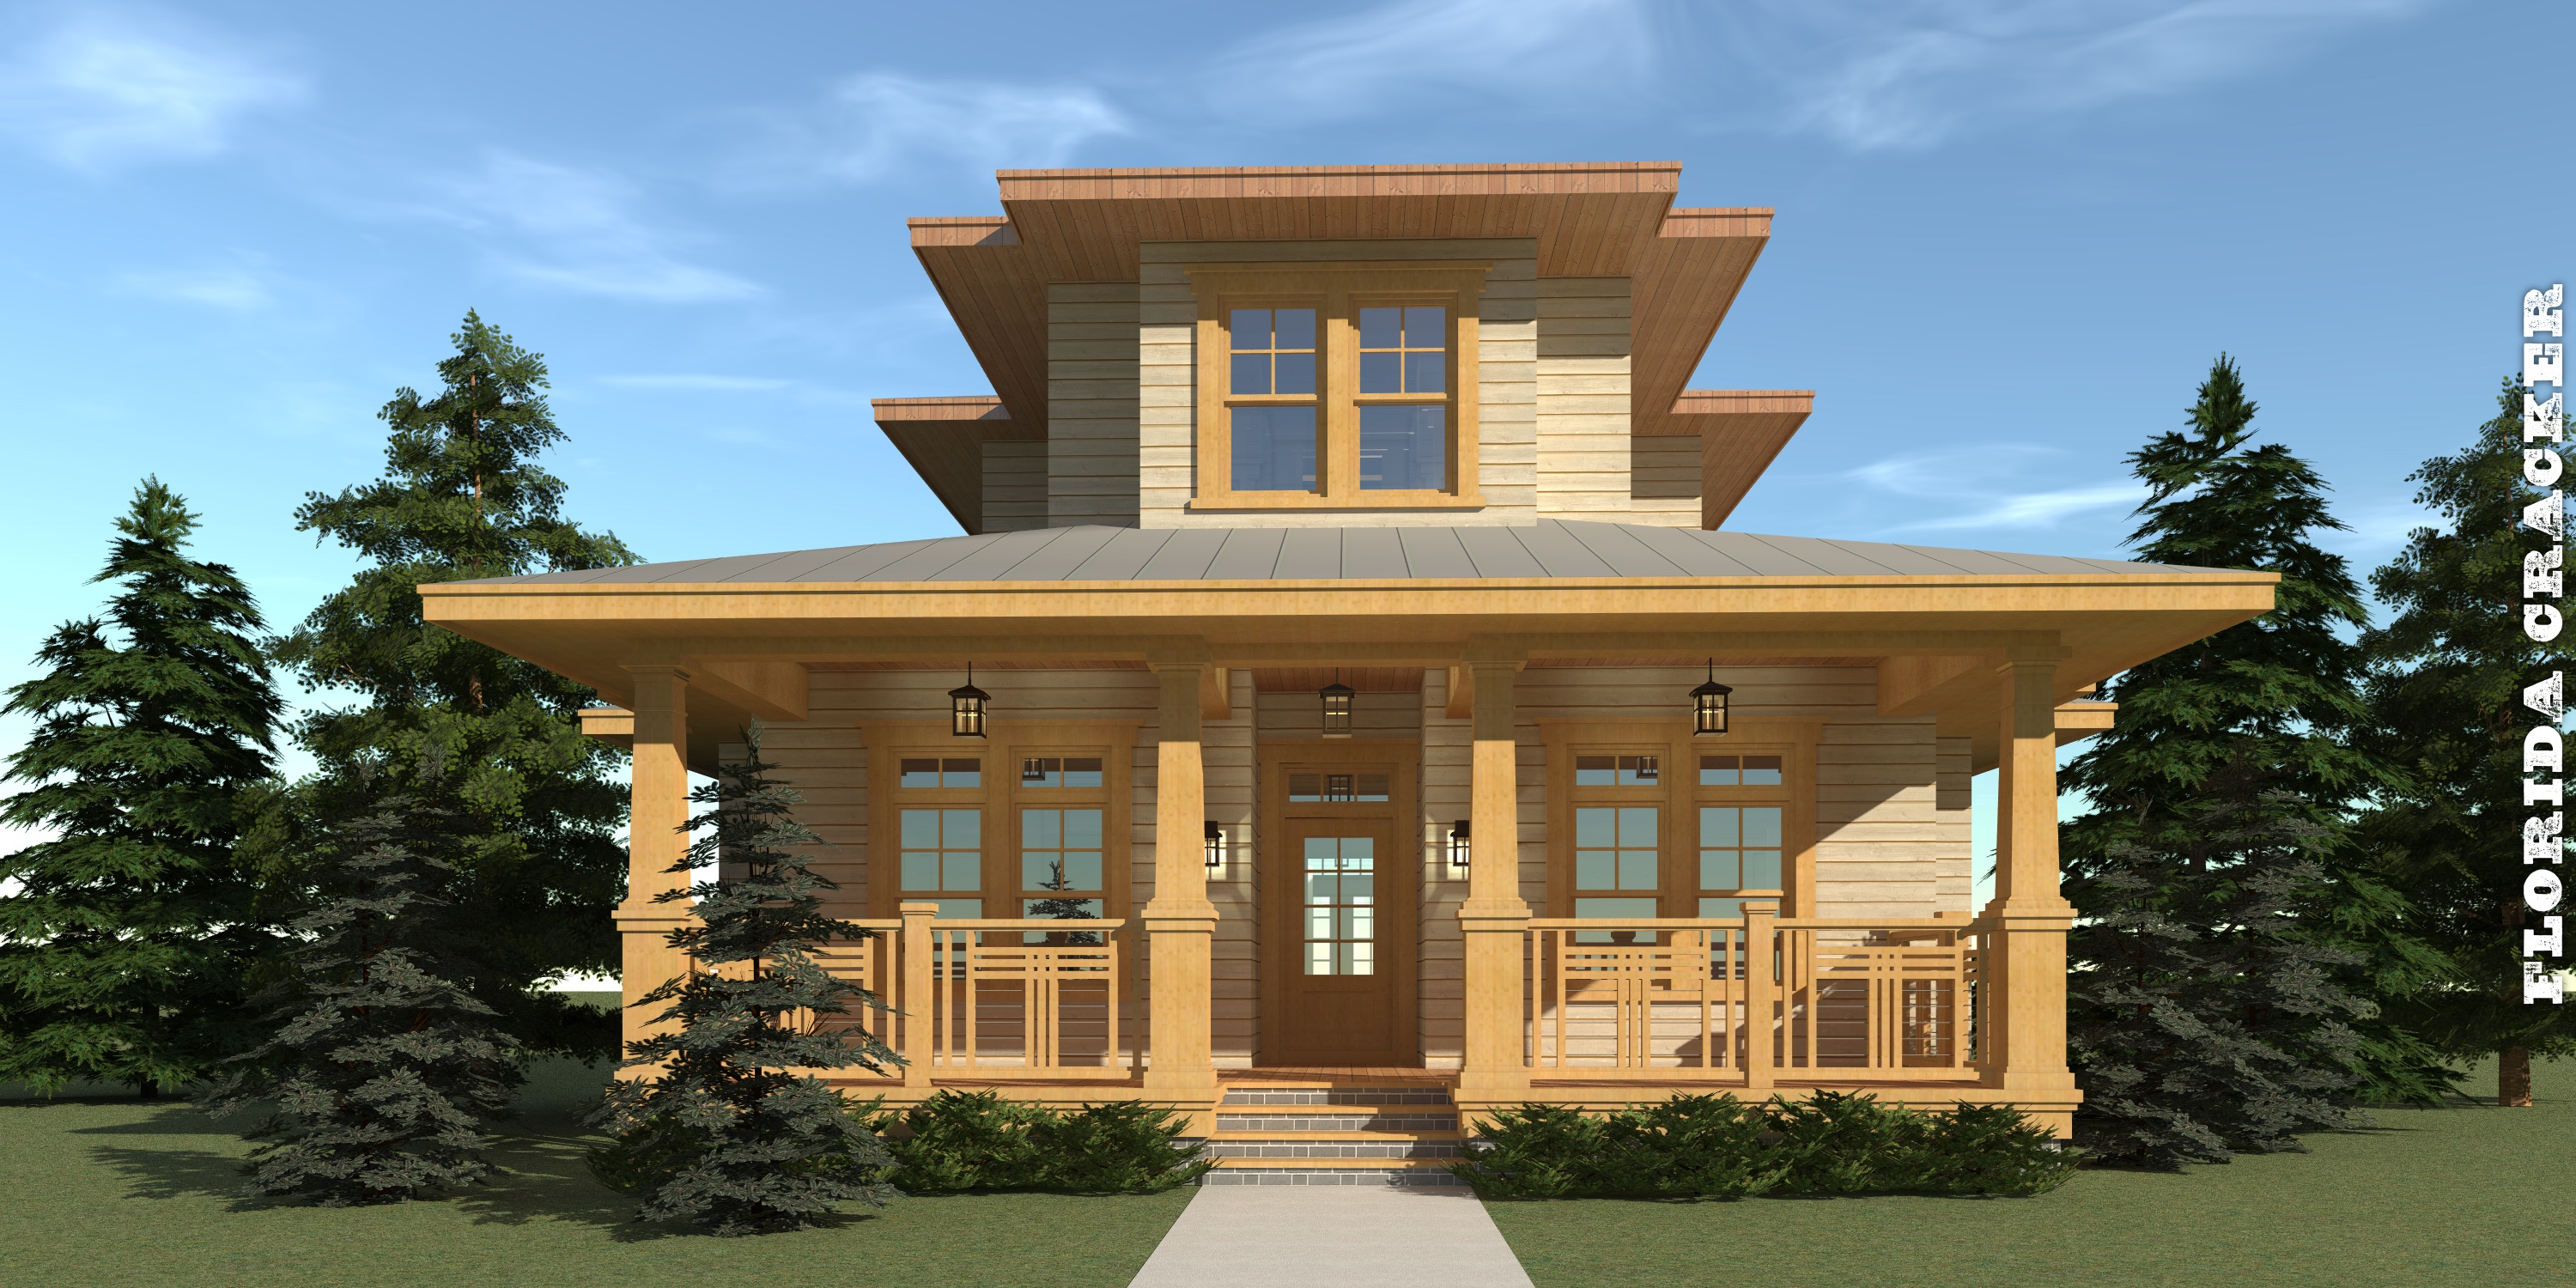 Florida cracker house plan by tyree house plans for House plans florida cracker style